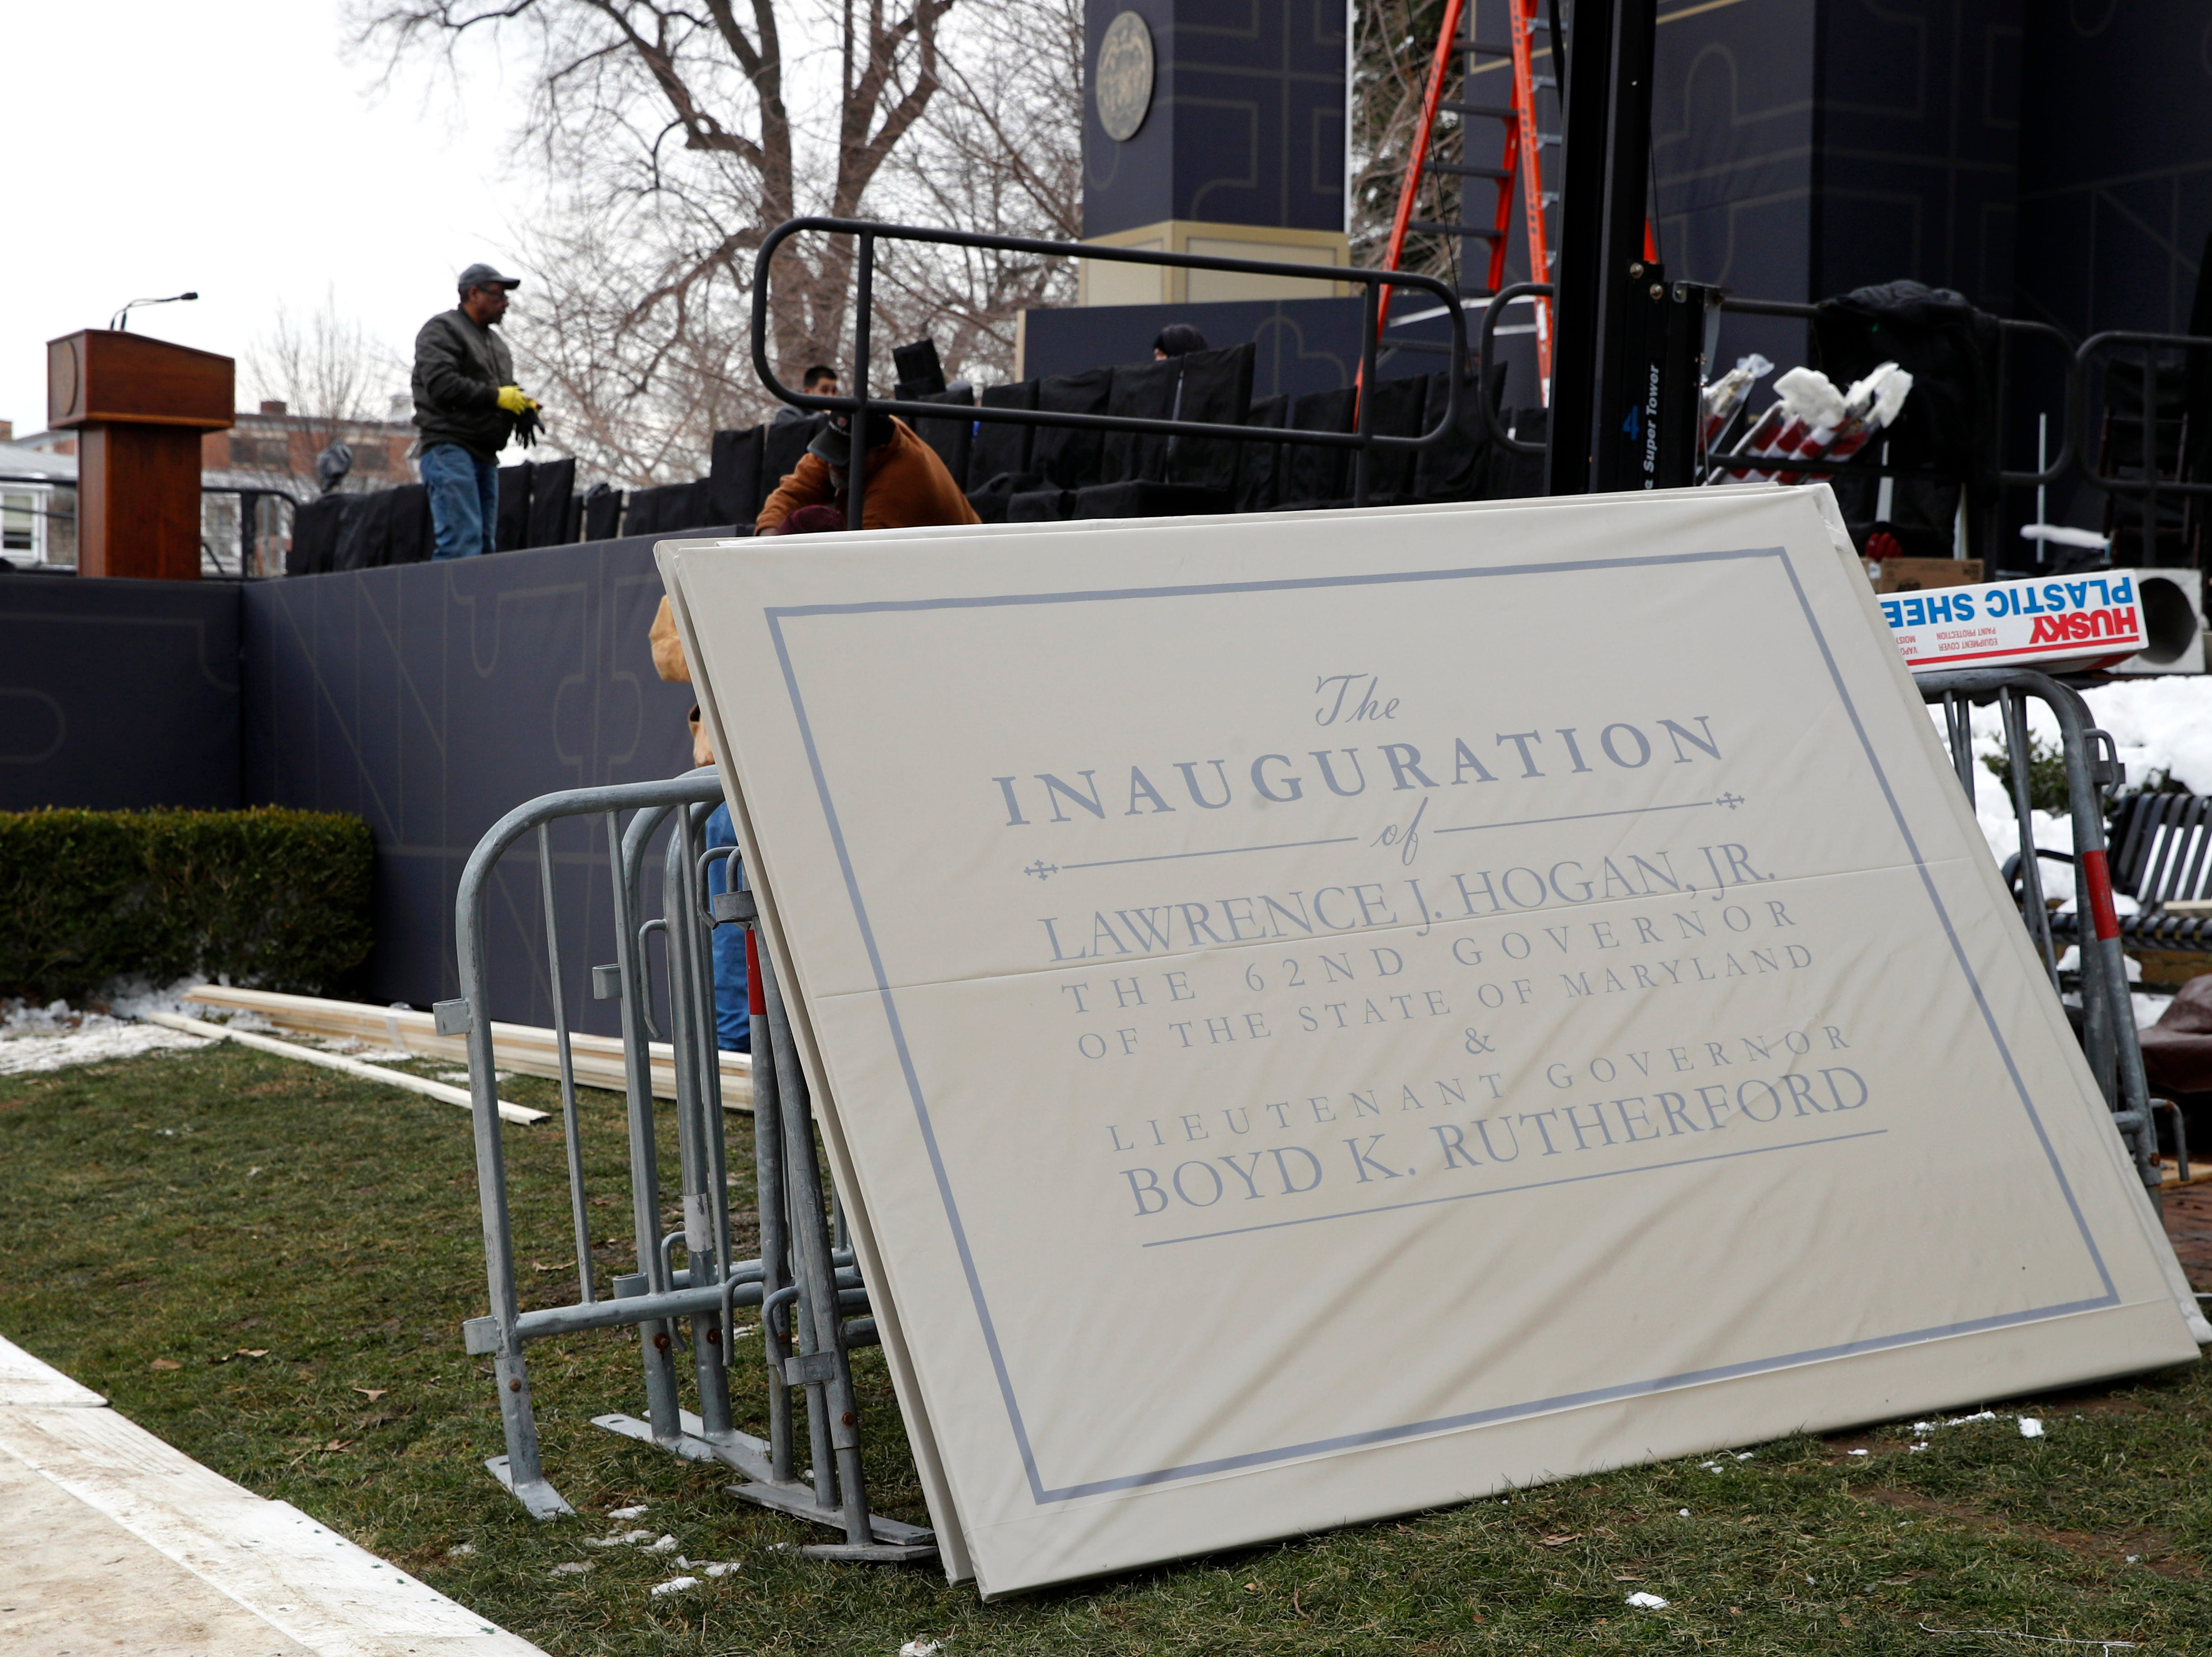 Signage waits to be installed as workers prepare a stage for Maryland Gov. Larry Hogan's inauguration ceremony Tuesday, Jan. 15, 2019, outside the Maryland State House in Annapolis.